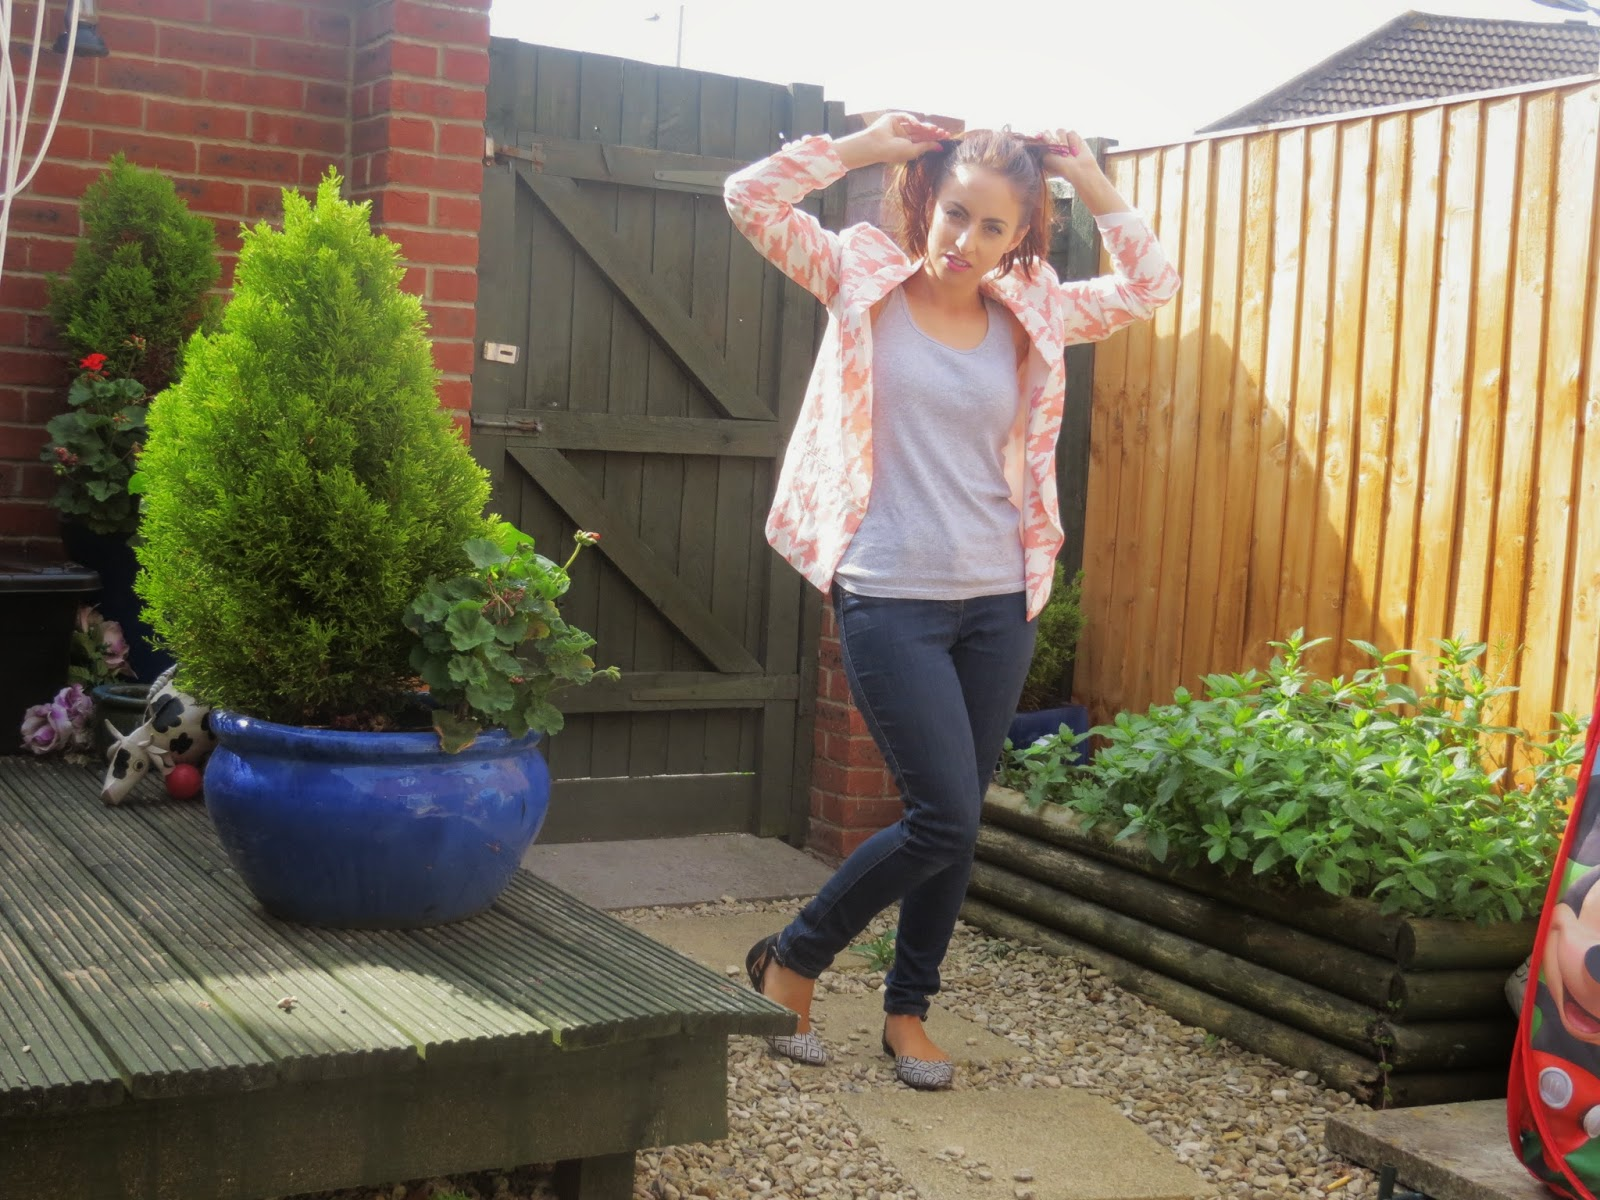 Miss guided, Jacket, coral, summer, ootd, outfit inspiration, outfit, matalan, shoes, pretty, primark, next, fashion, fblogger